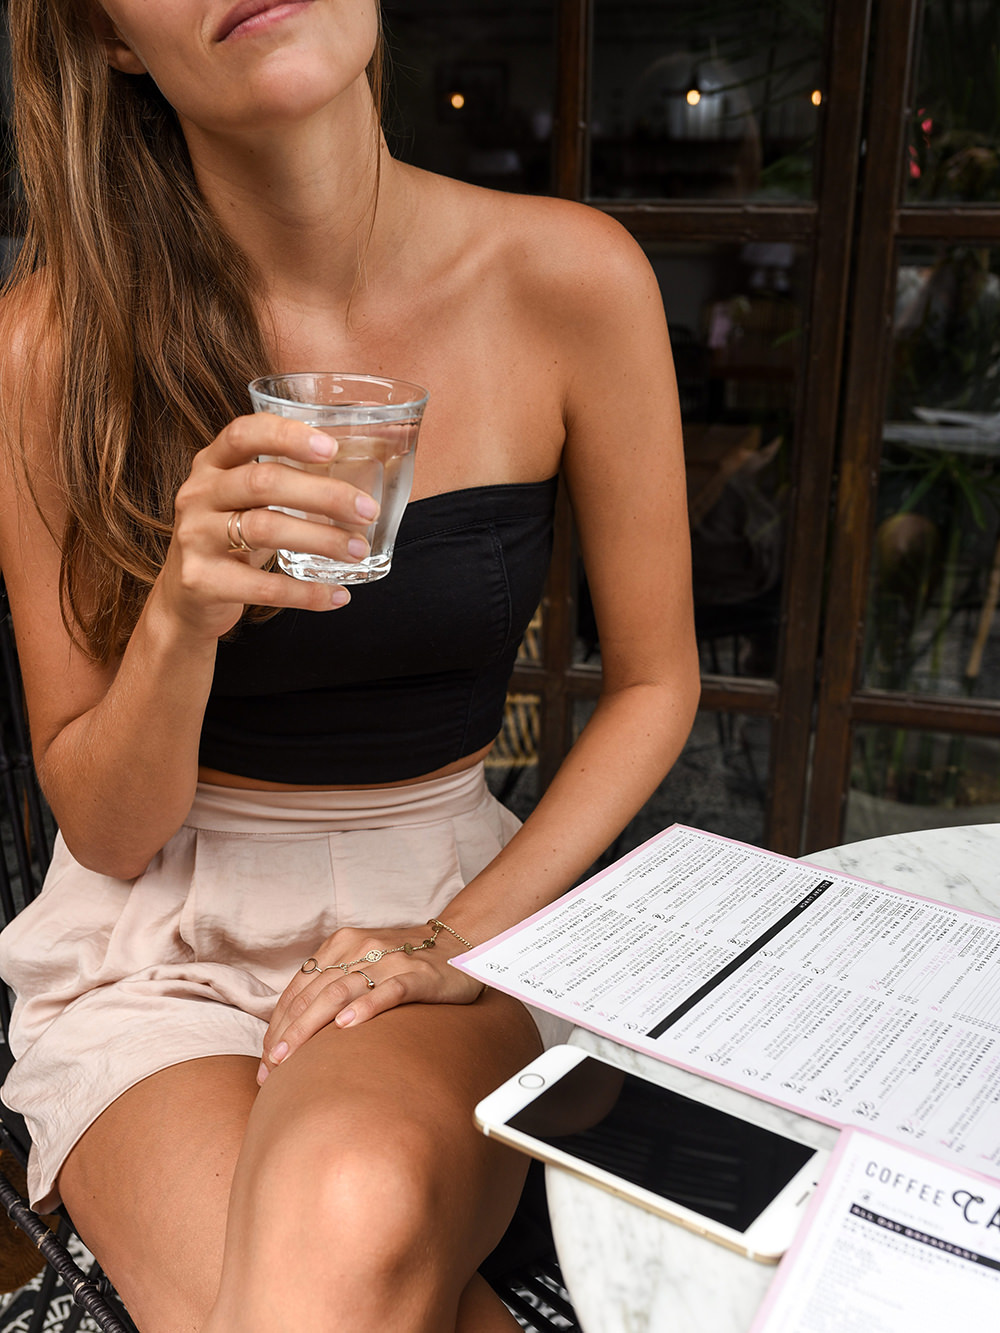 Drink Water and stay away from alcohol - At least 3 days prior to your casting or photography project, drink 3 liters of water each day and stay away from alcohol. It helps your skin bright and soft for the day.